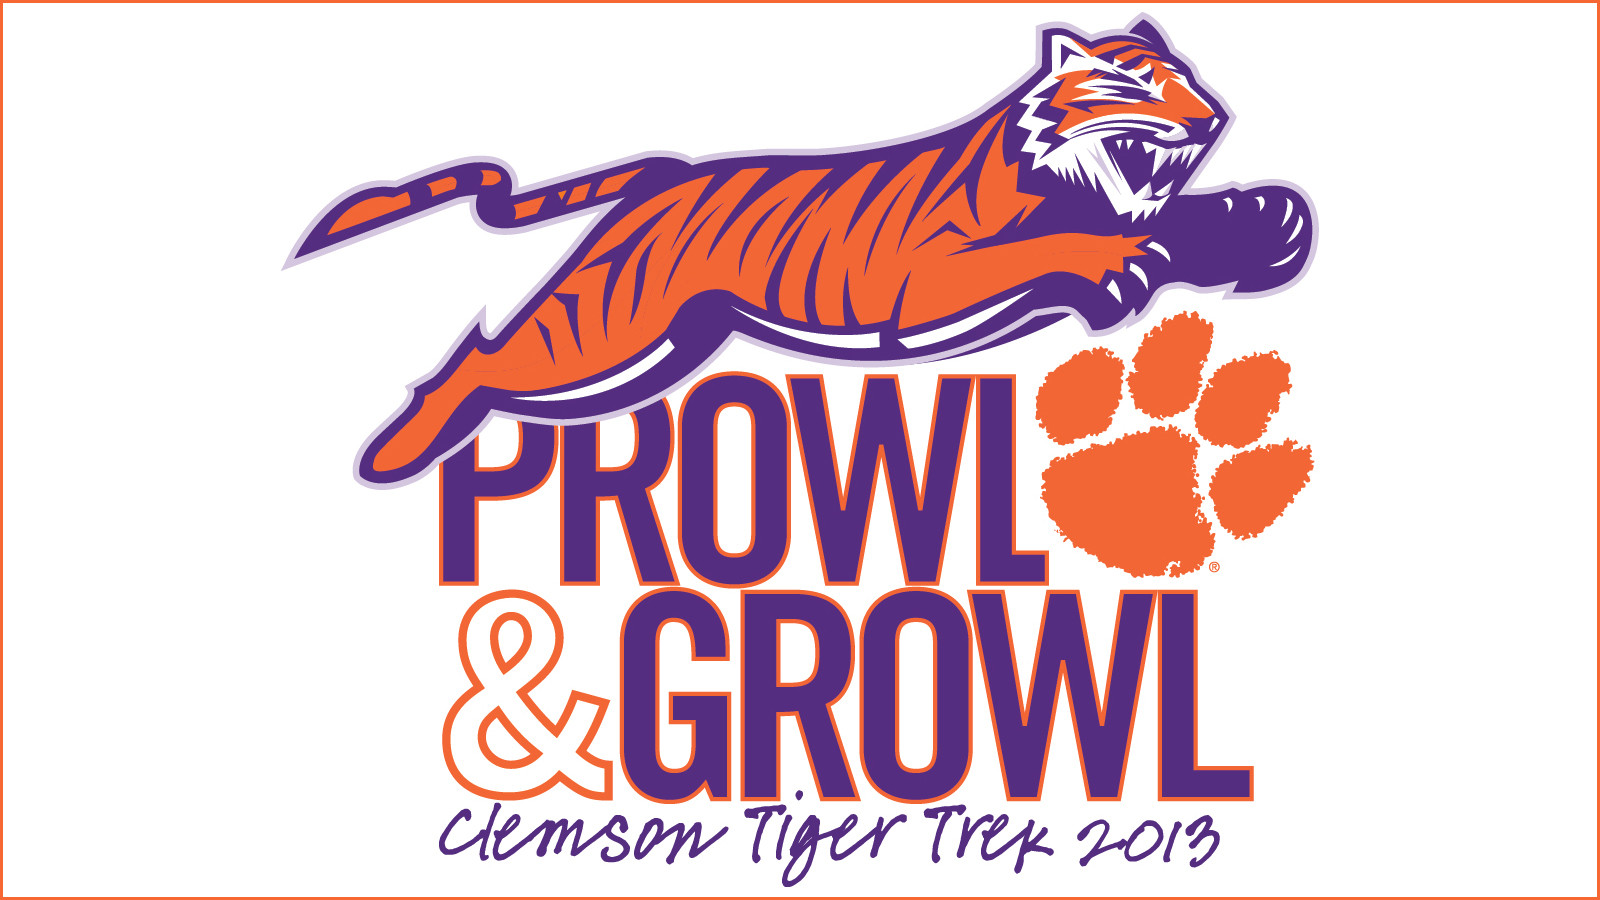 2013 Prowl and Growl Coaches Tour Dates and Information Announced